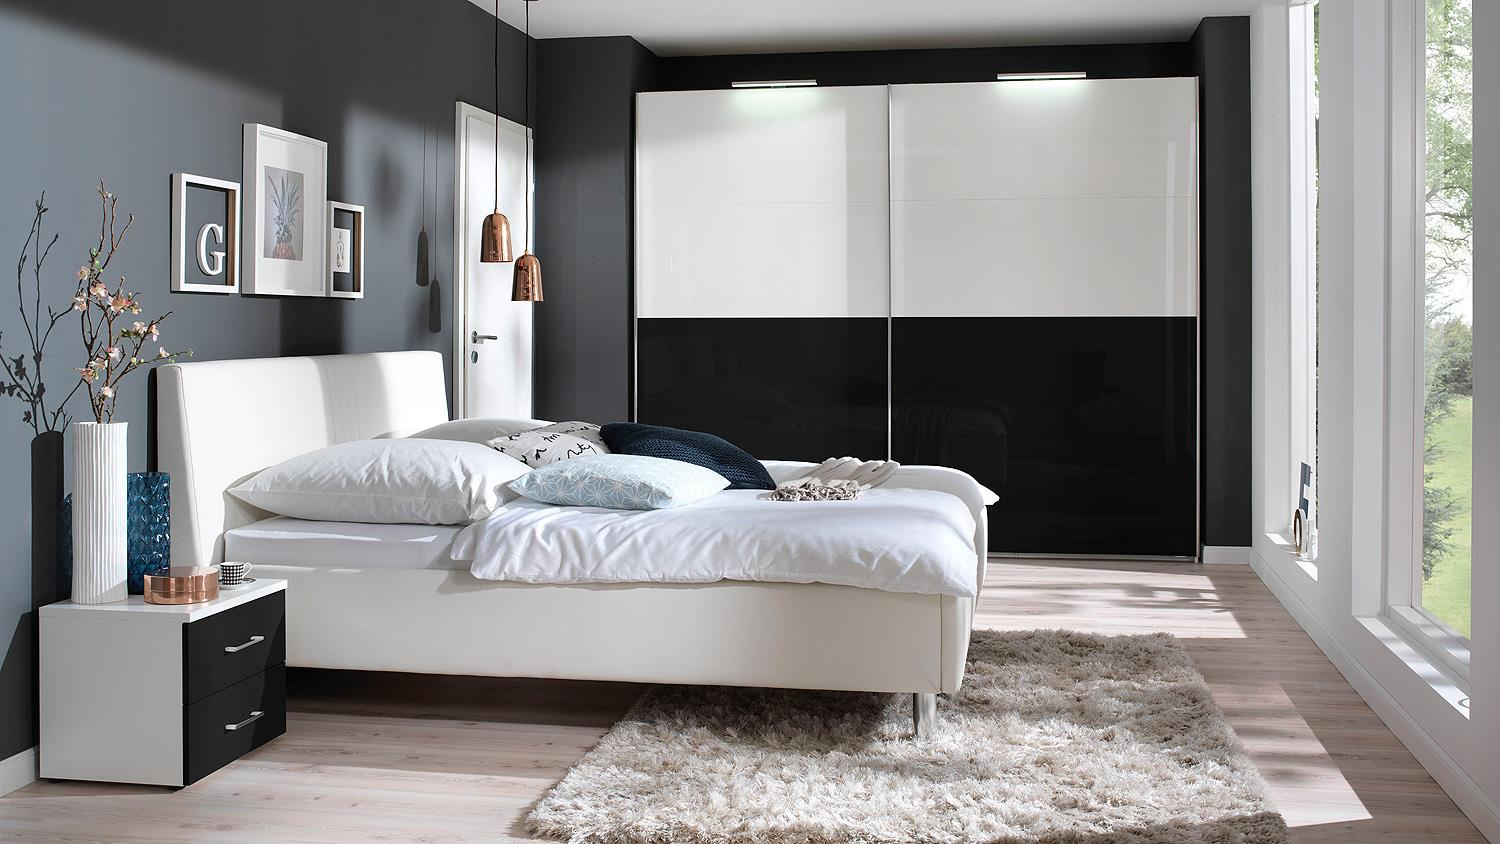 schlafzimmer kleiderschrankwunder in wei schwarz hochglanz wellem bel. Black Bedroom Furniture Sets. Home Design Ideas